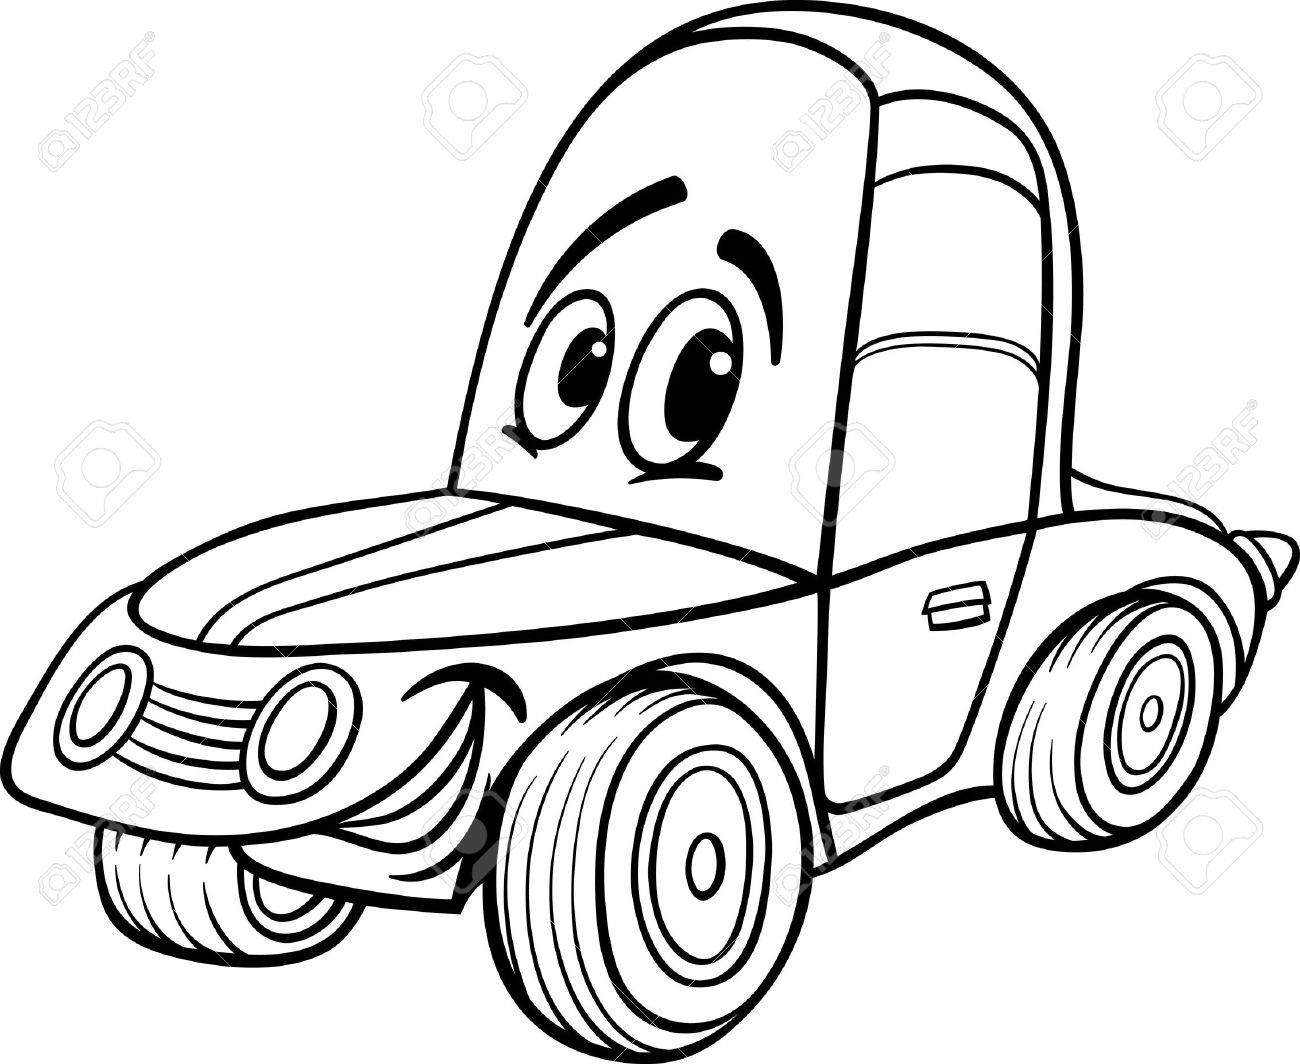 hight resolution of black and white cartoon illustration of funny racing car vehicle comic mascot character for coloring book